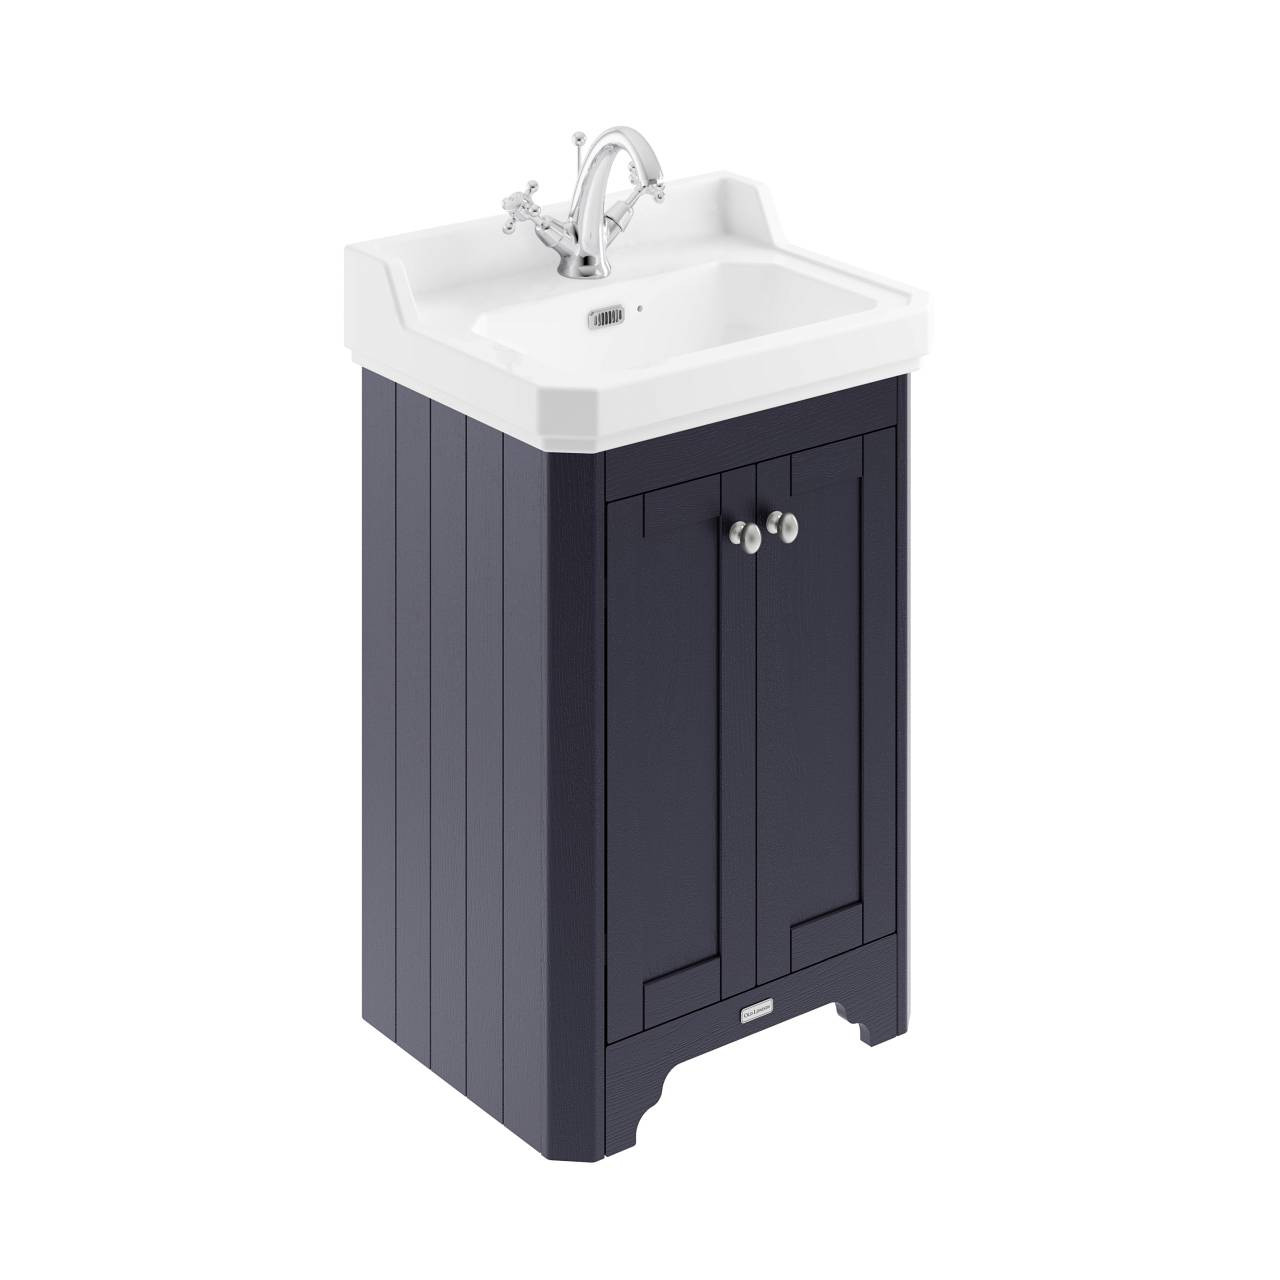 Old London Twilight Blue 560mm 2 Door Vanity Unit and Basin with 1 Tap Hole - LOF373